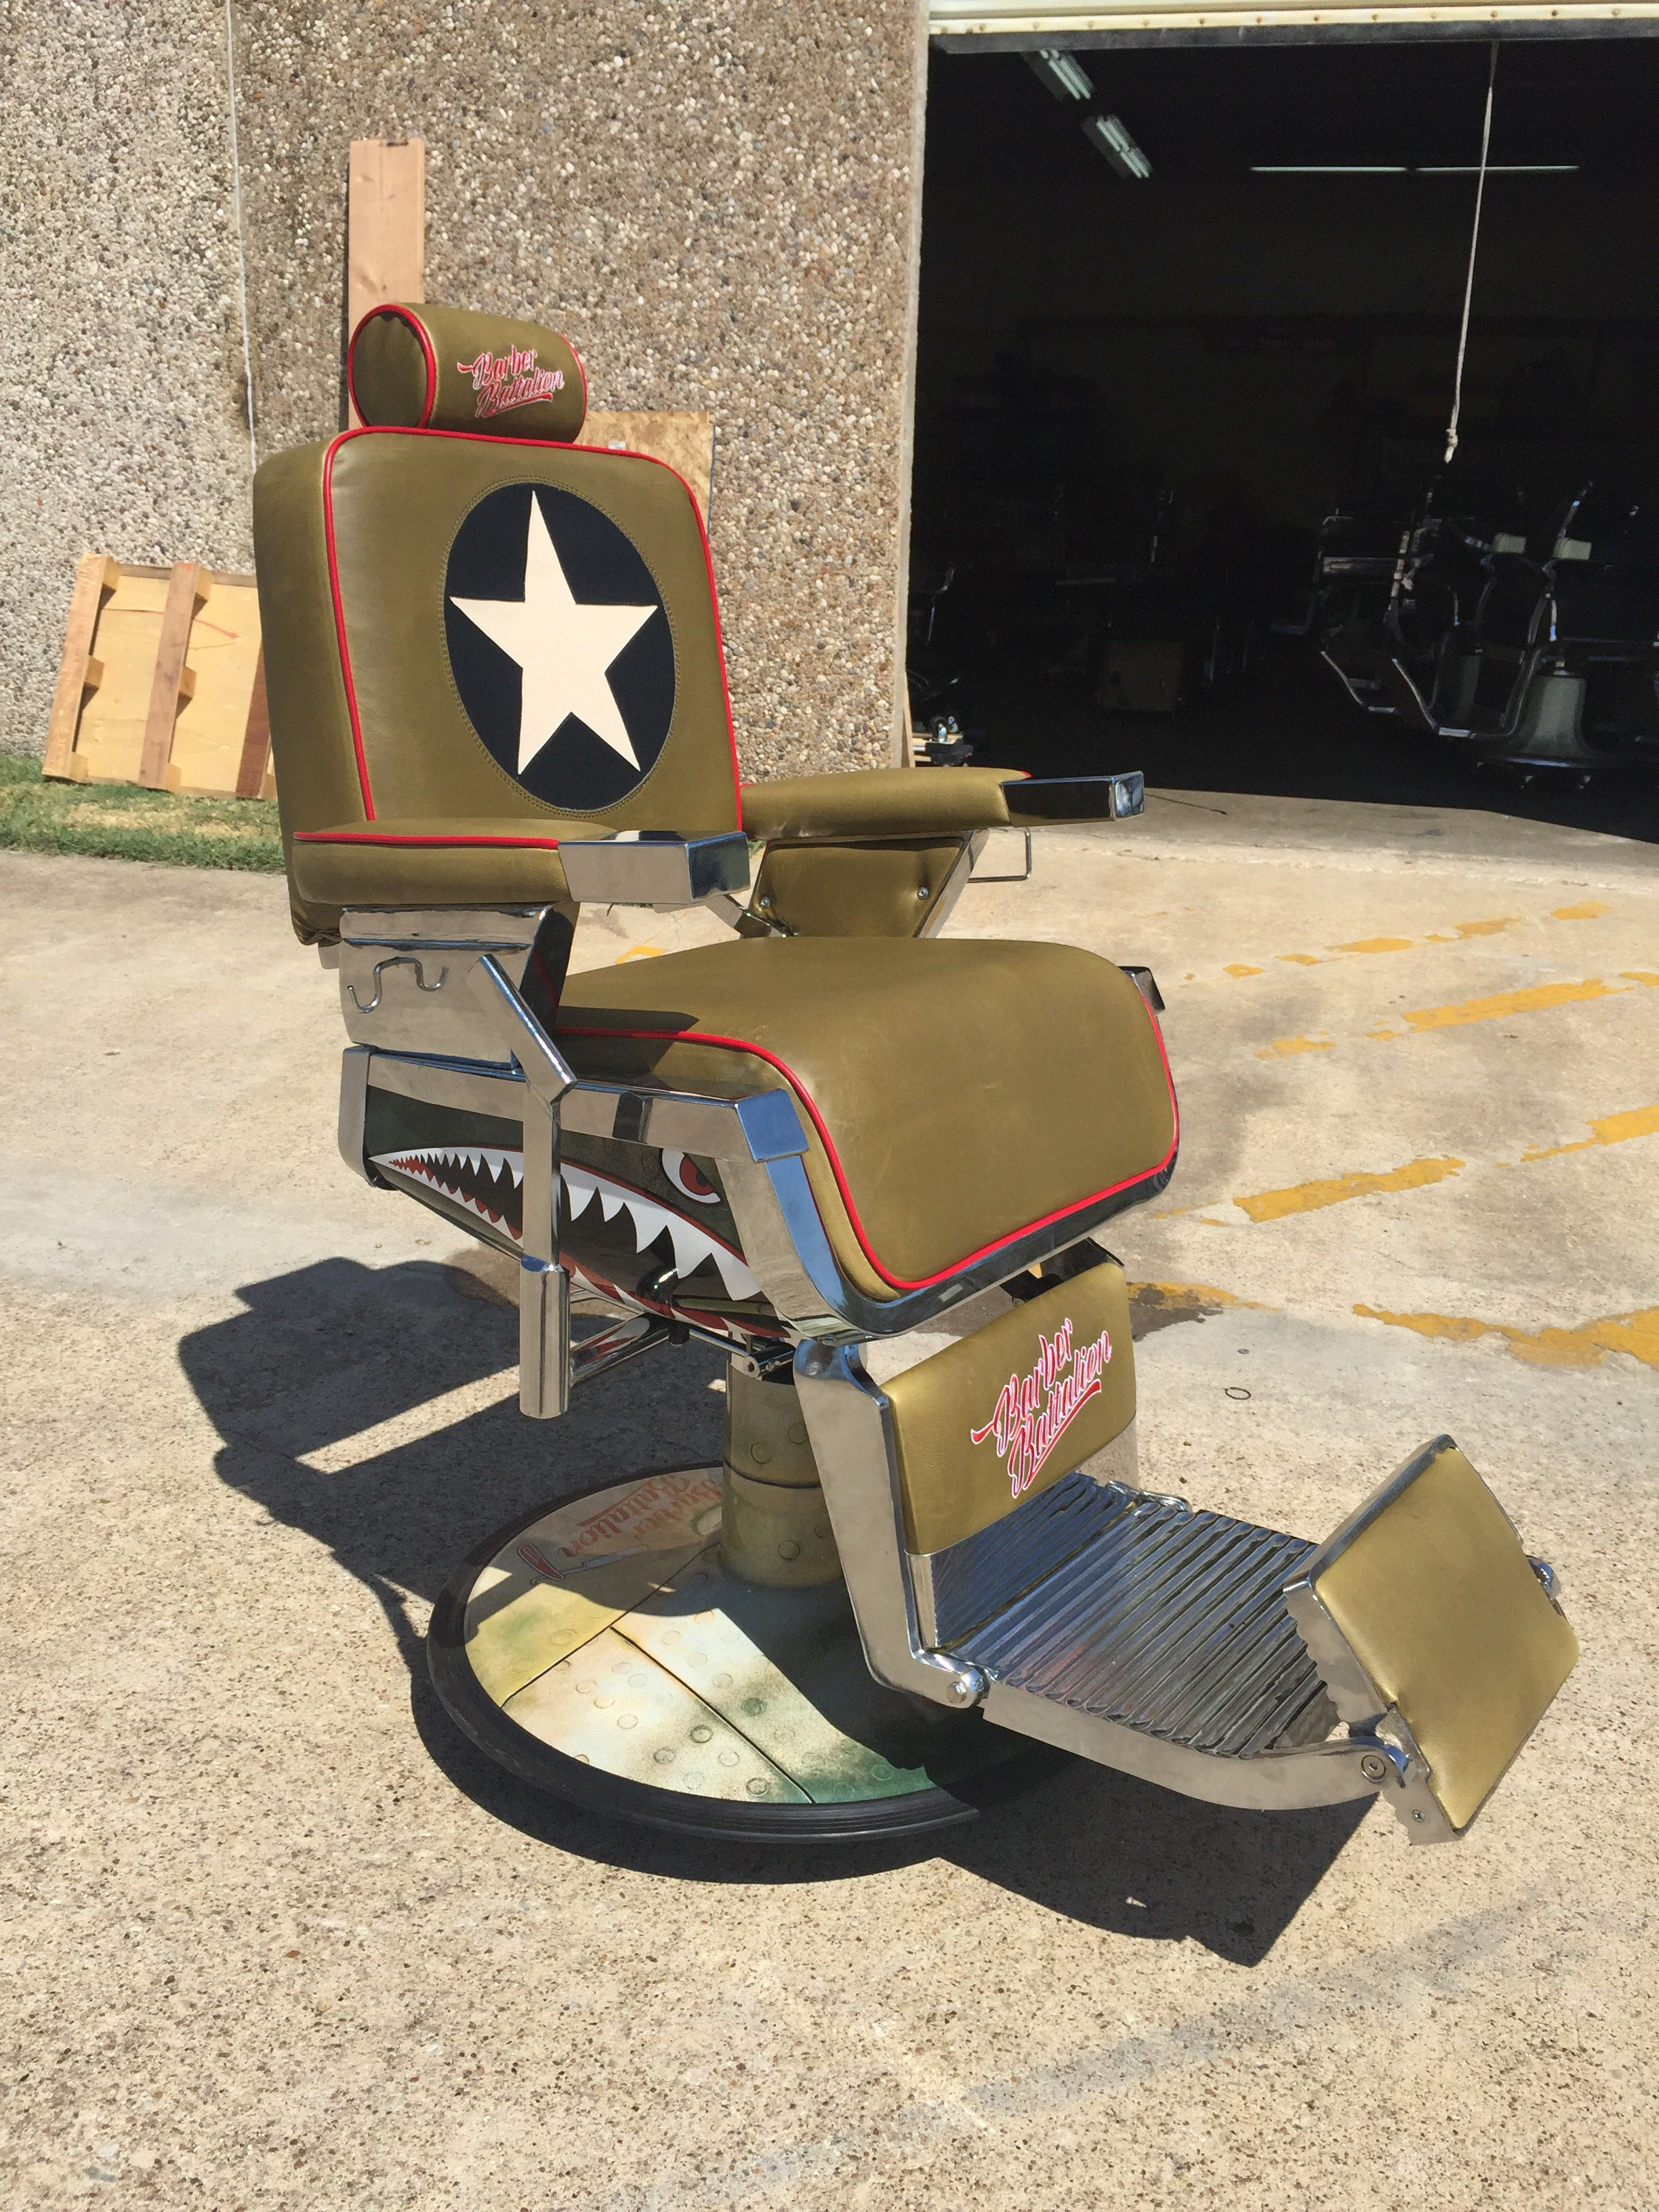 Barber batallion limited series chair with images